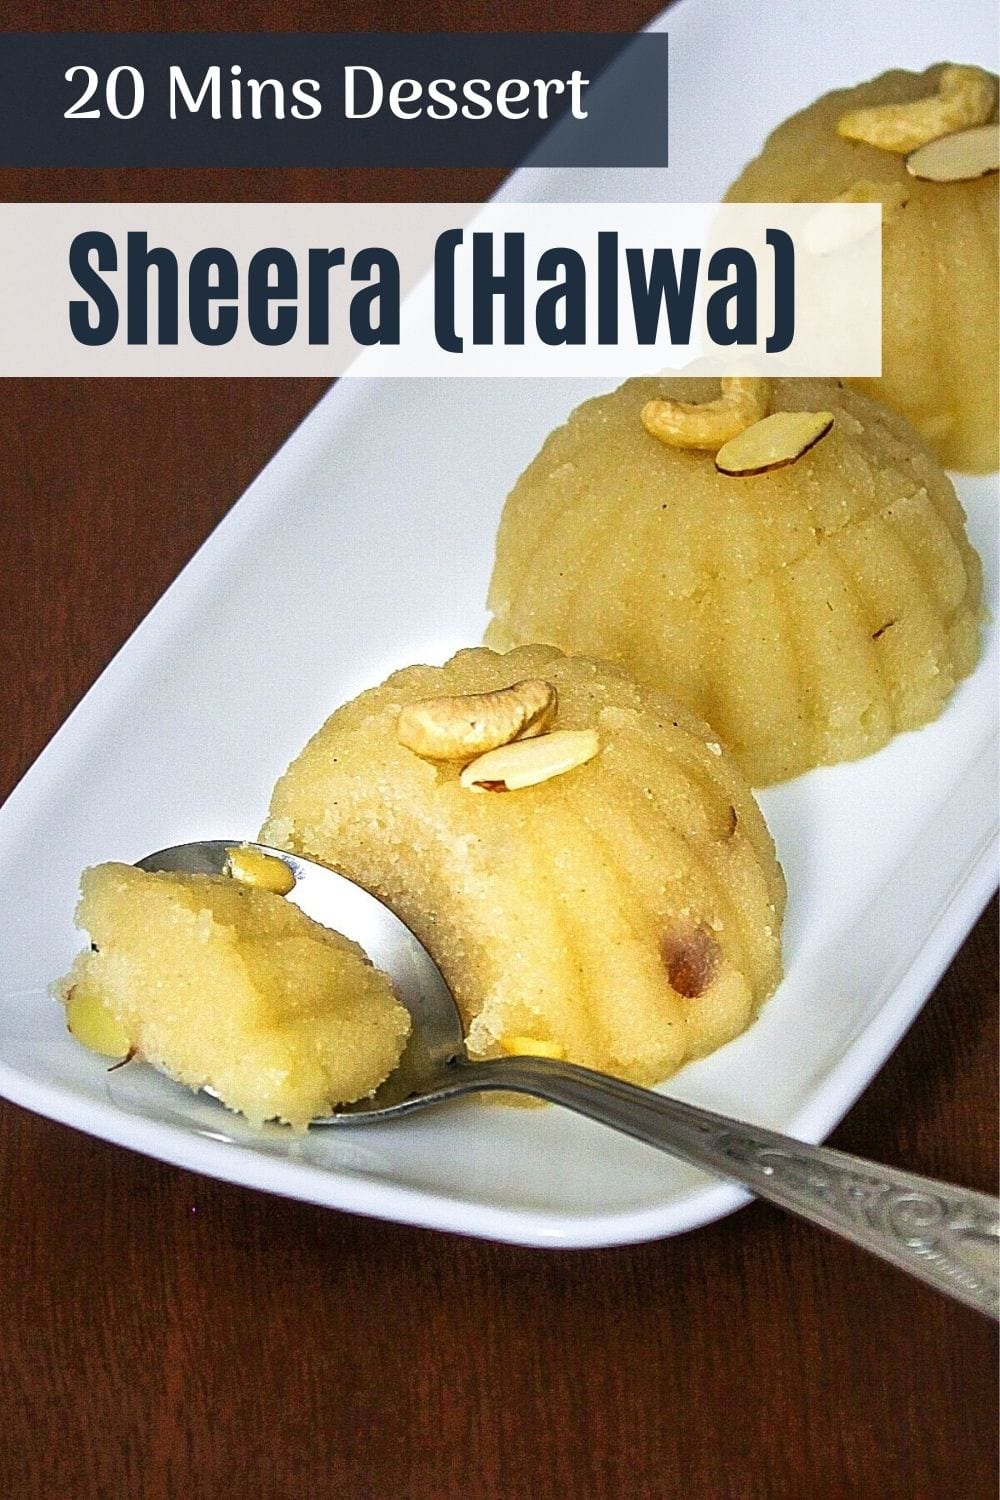 Rava sheera taken a spoonful ready to eat with text on top of the image